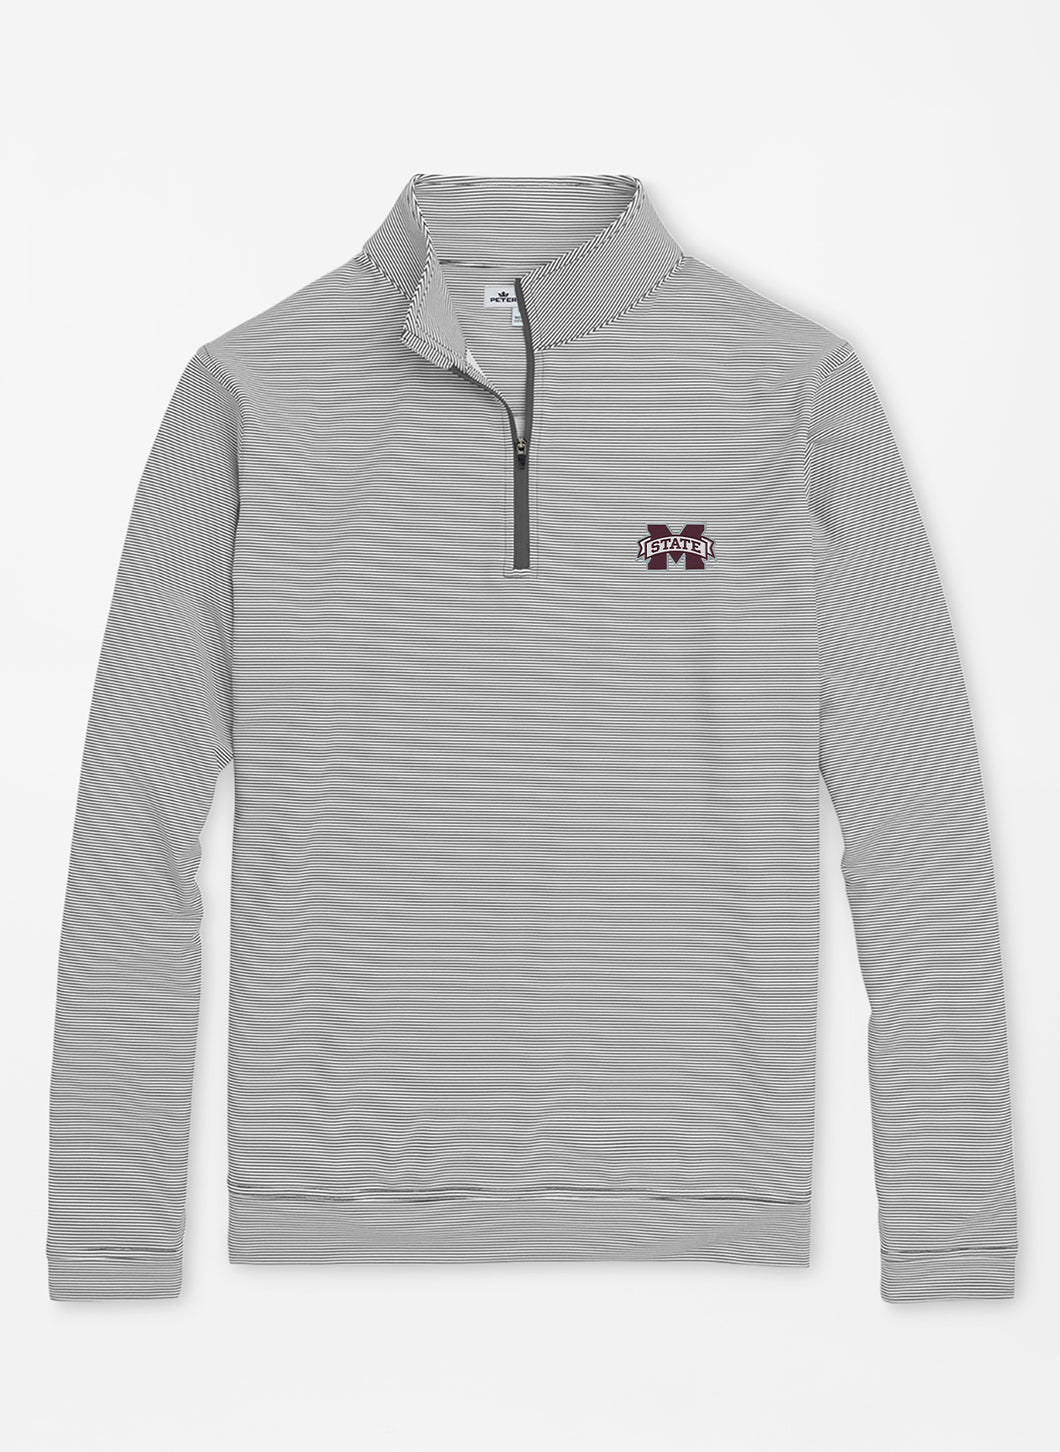 Peter Millar Mississippi State Perth Mini-Stripe Performance 1/4 Zip: Iron & White